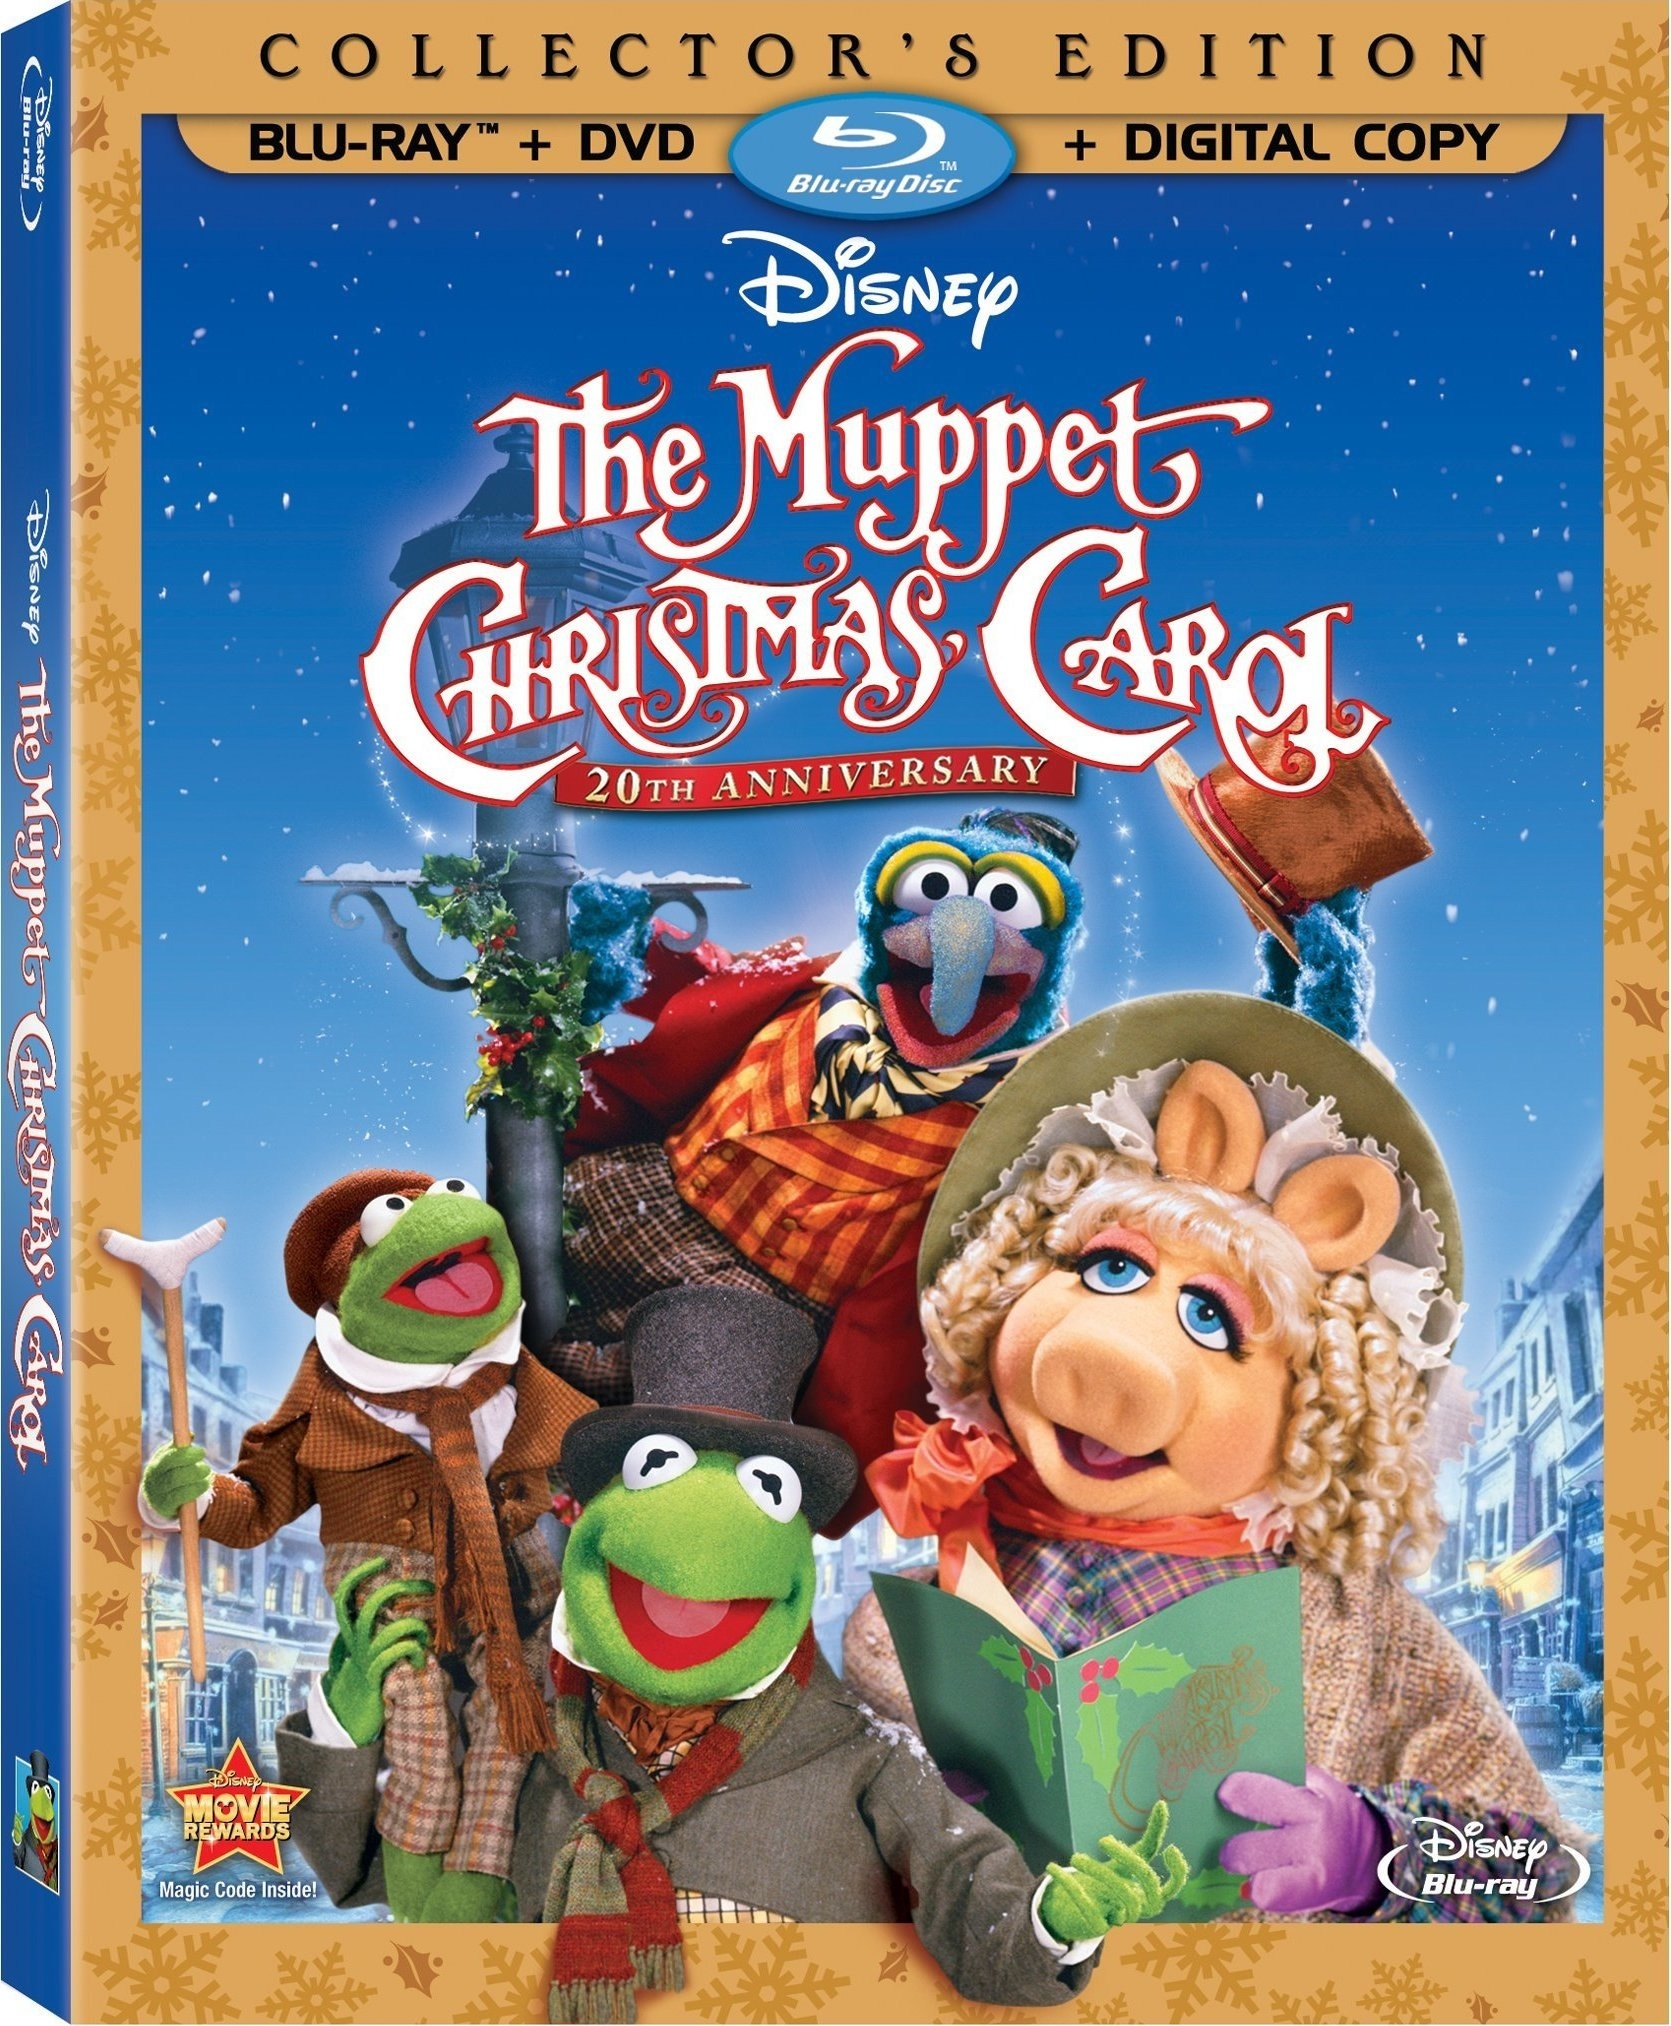 the muppet christmas carol on blu ray - Mickeys Christmas Carol Blu Ray